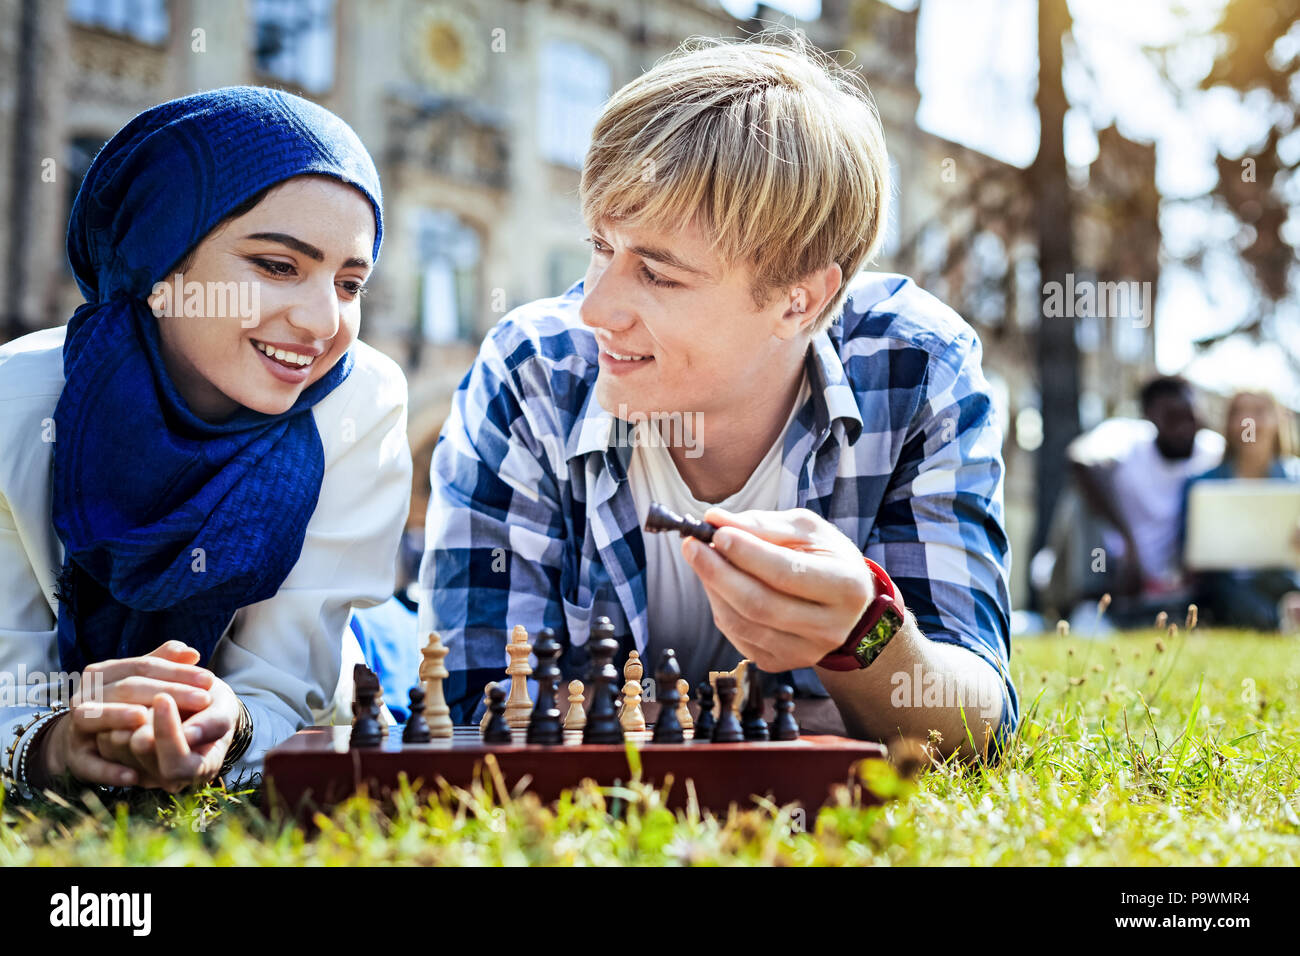 Friendly guy teaching girl playing chess - Stock Image